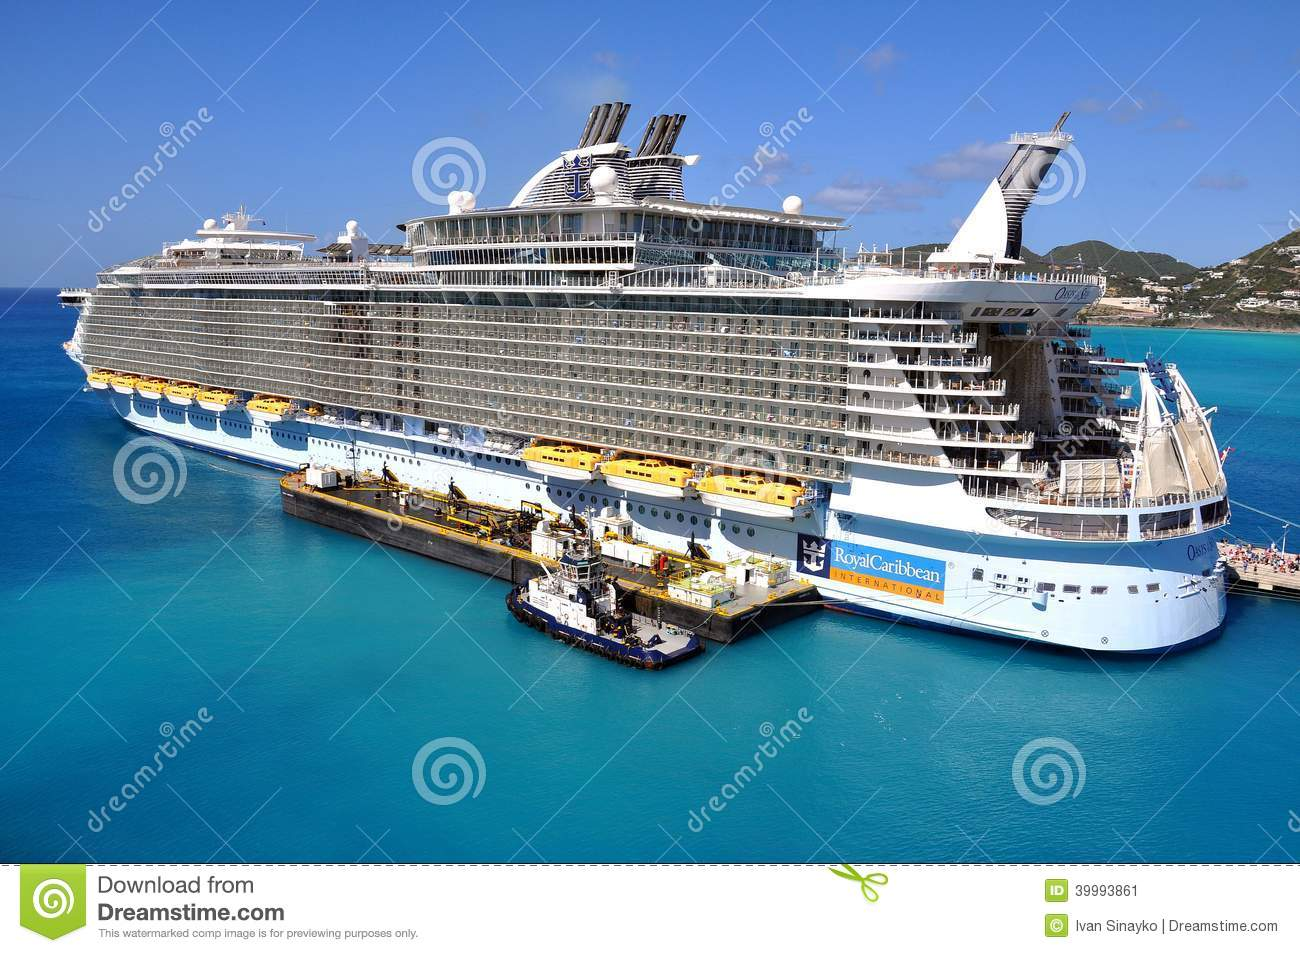 Royal caribbean cruise line routes wallpapers punchaos inspiration 19 royal caribbean cruise line routes new xflitez Images